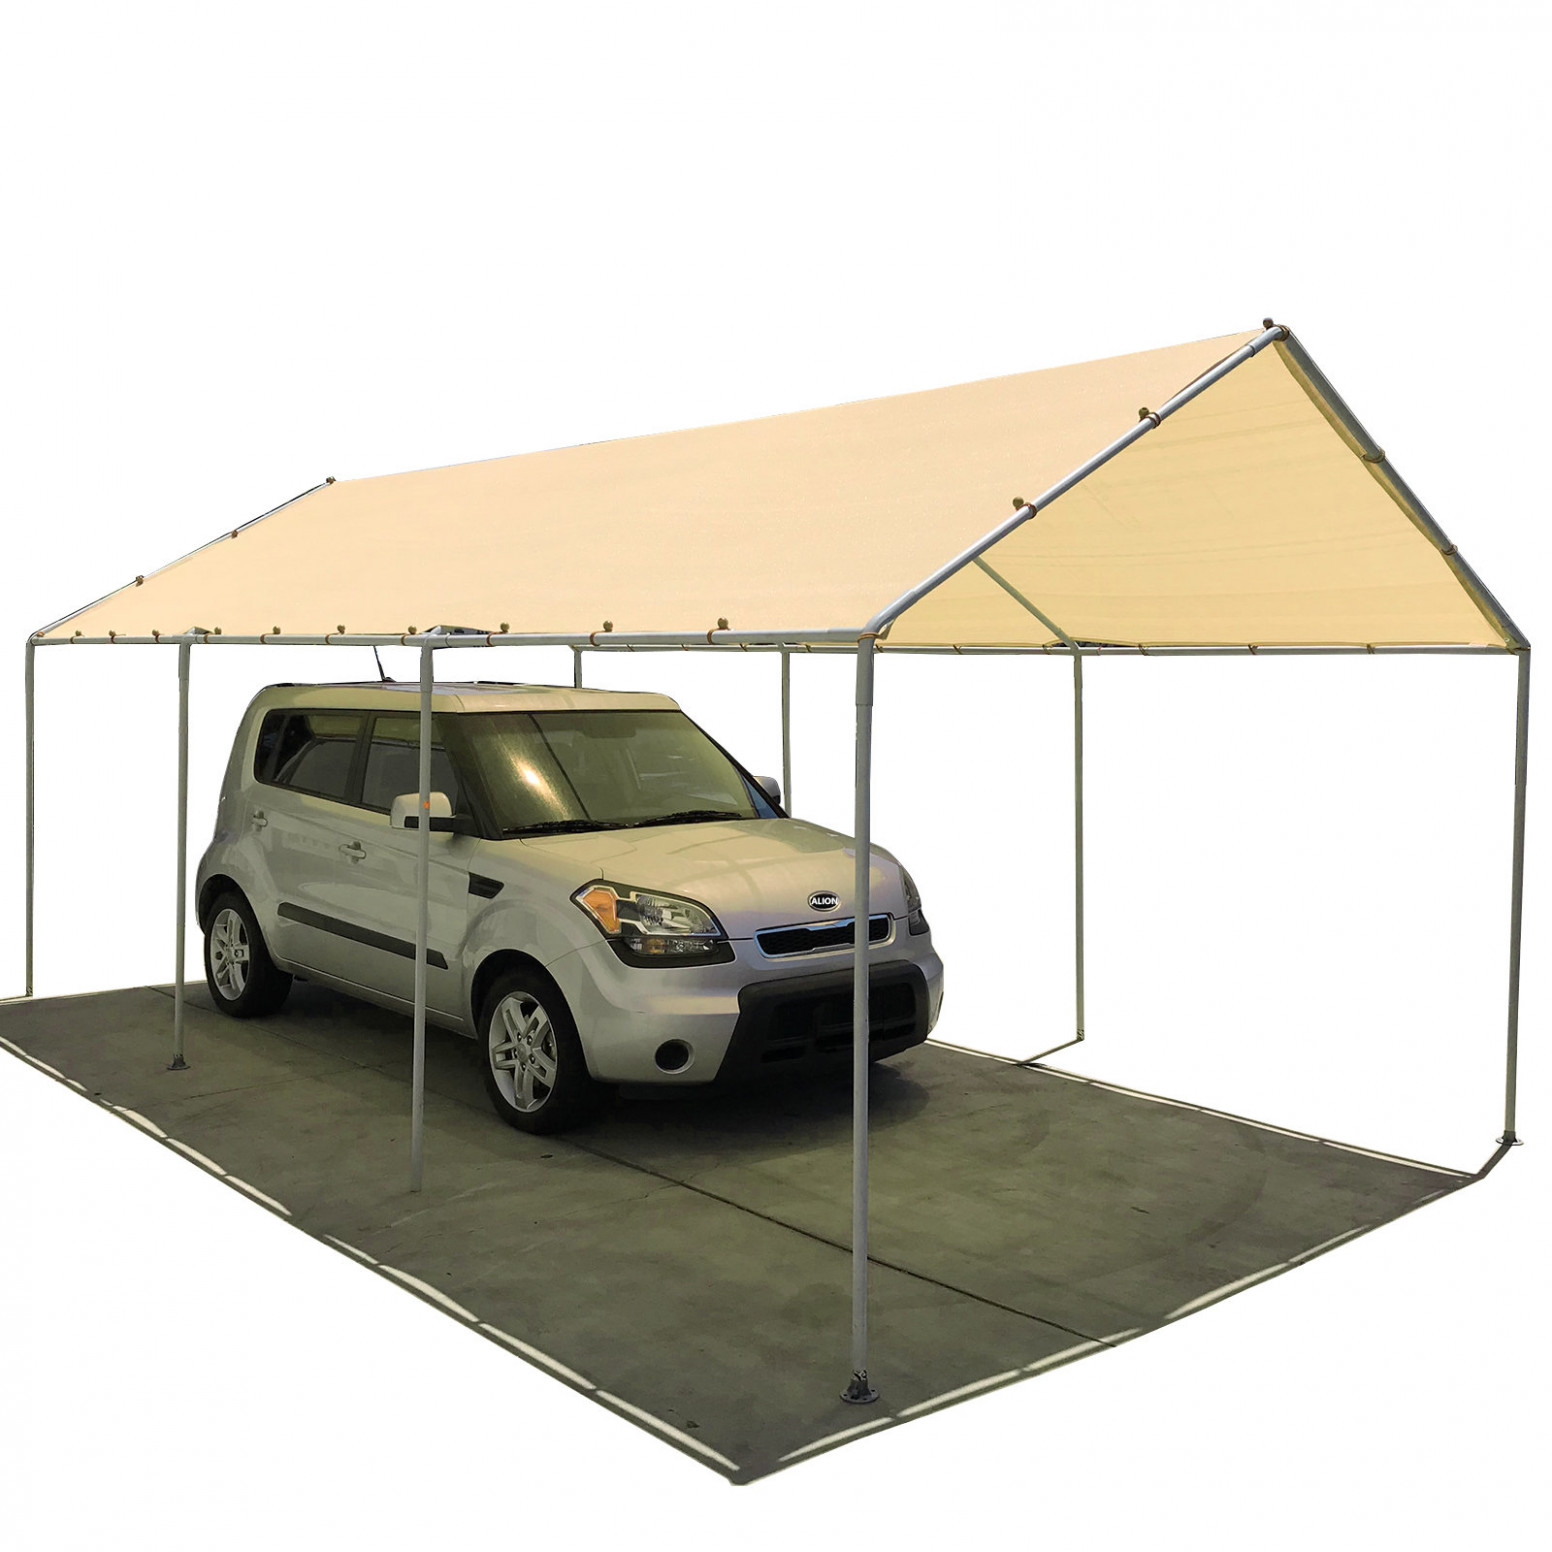 Carport Canopy Replacement Permeable Sun Shade Cover (Frame Not Included) Carport Tent Replacement Parts